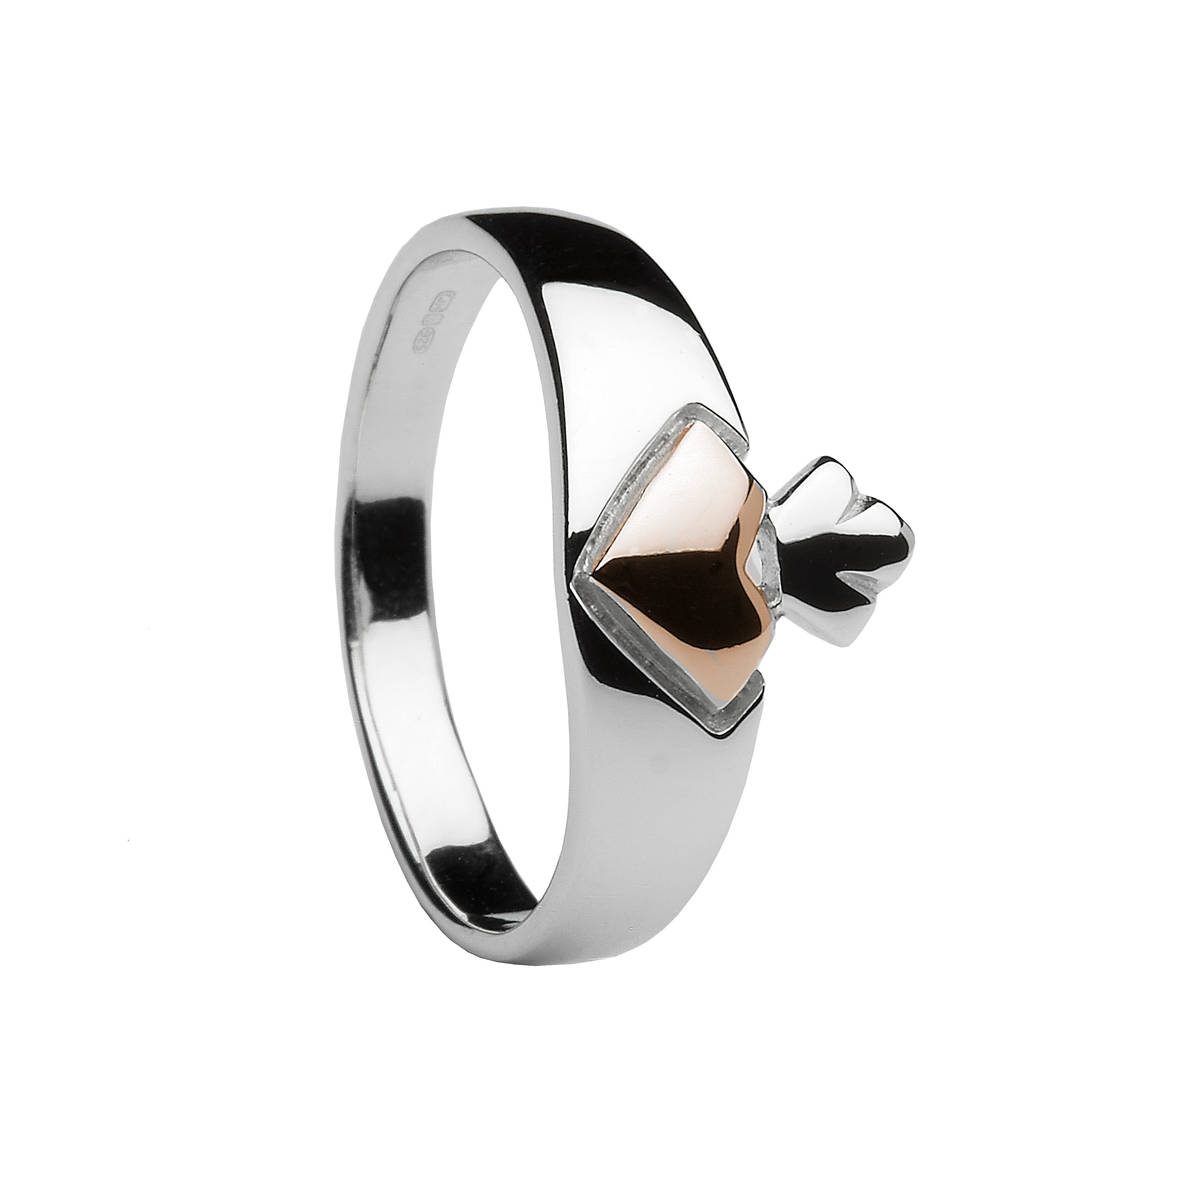 H of L silver/rose gold Claddagh ring heart made from rare Irish gold